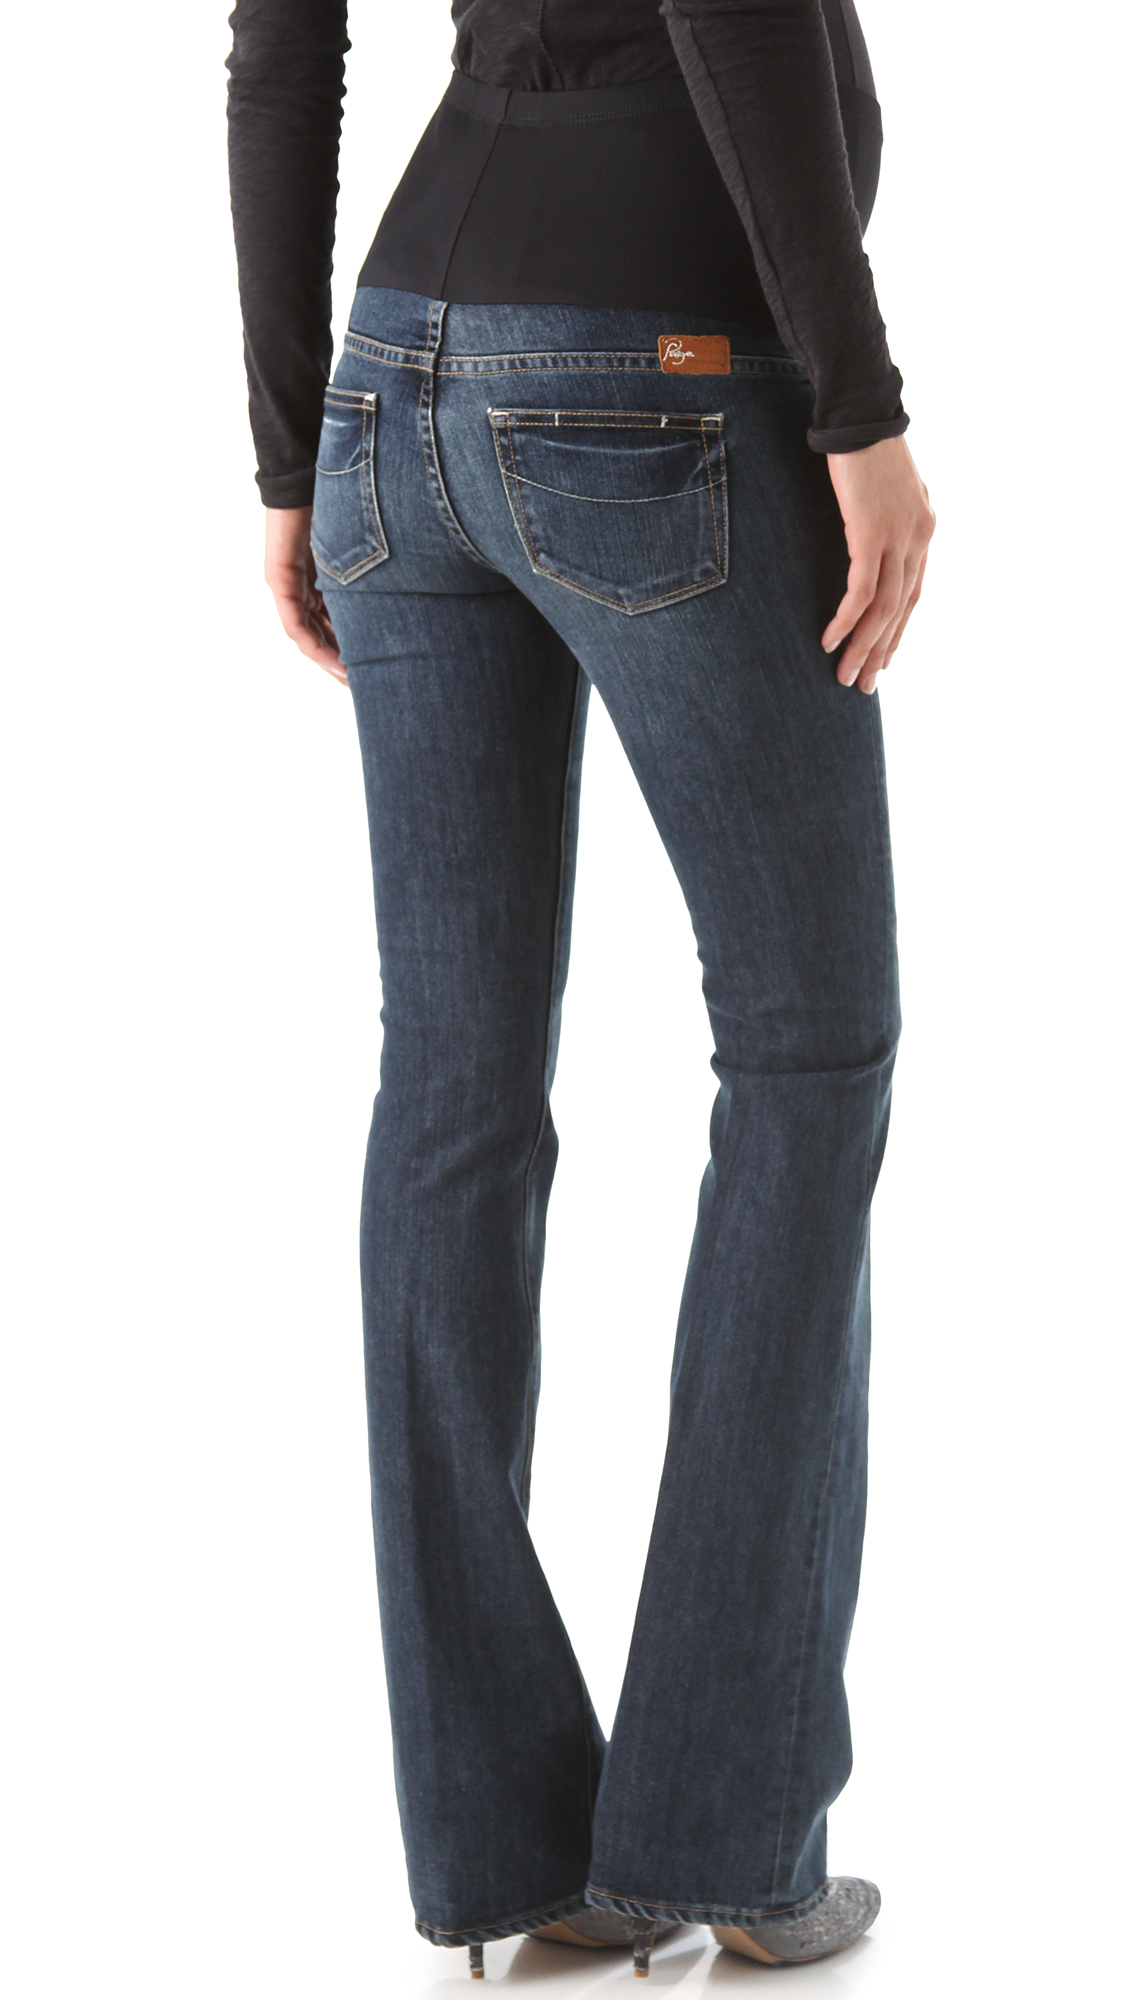 Paige Laurel Canyon Maternity Jeans in Blue | Lyst